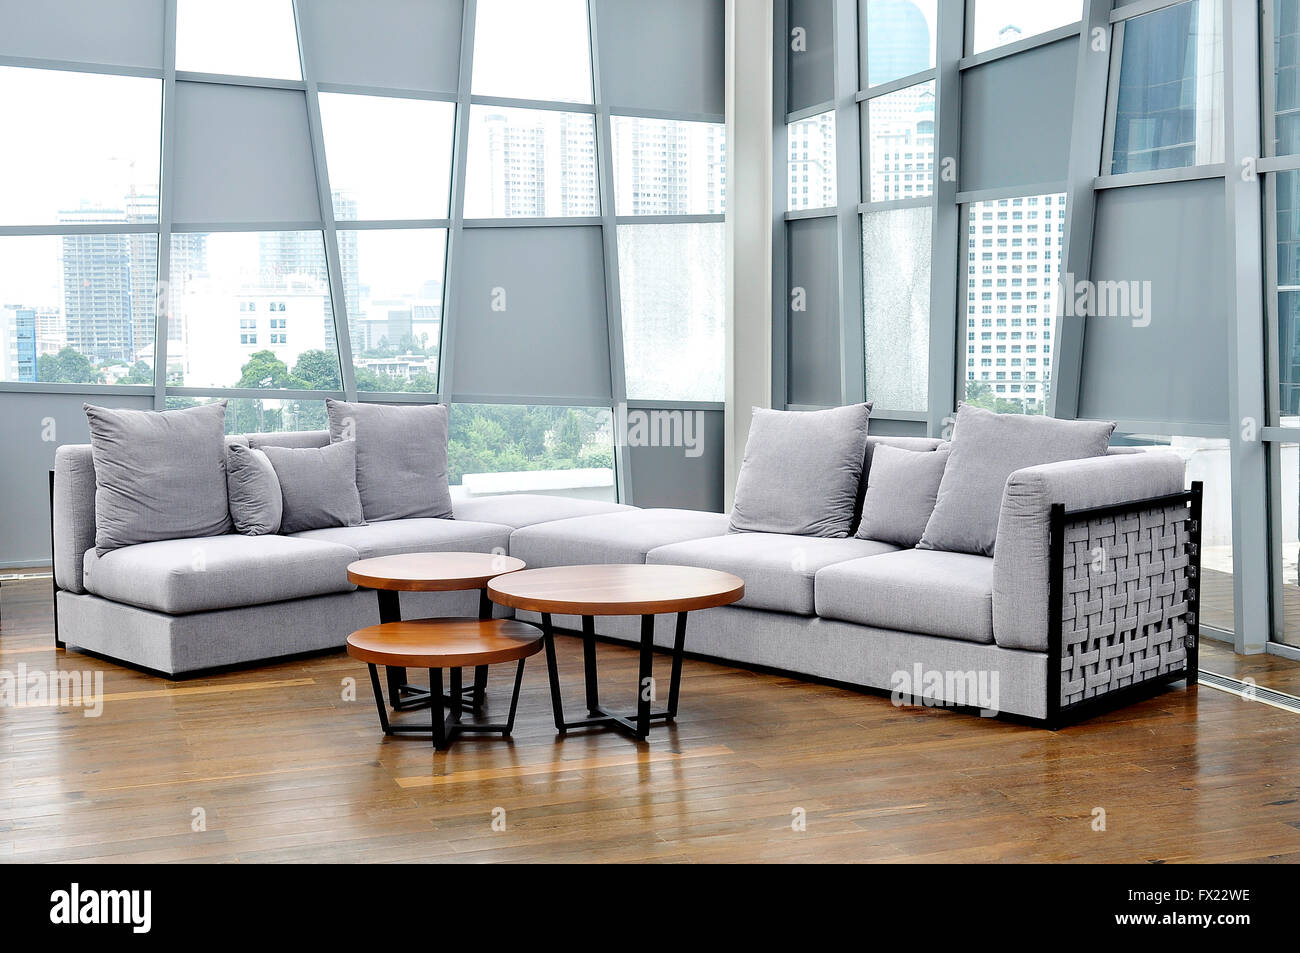 Sofa Scandinavian Jakarta Sofa Chairs Stock Photos Sofa Chairs Stock Images Alamy